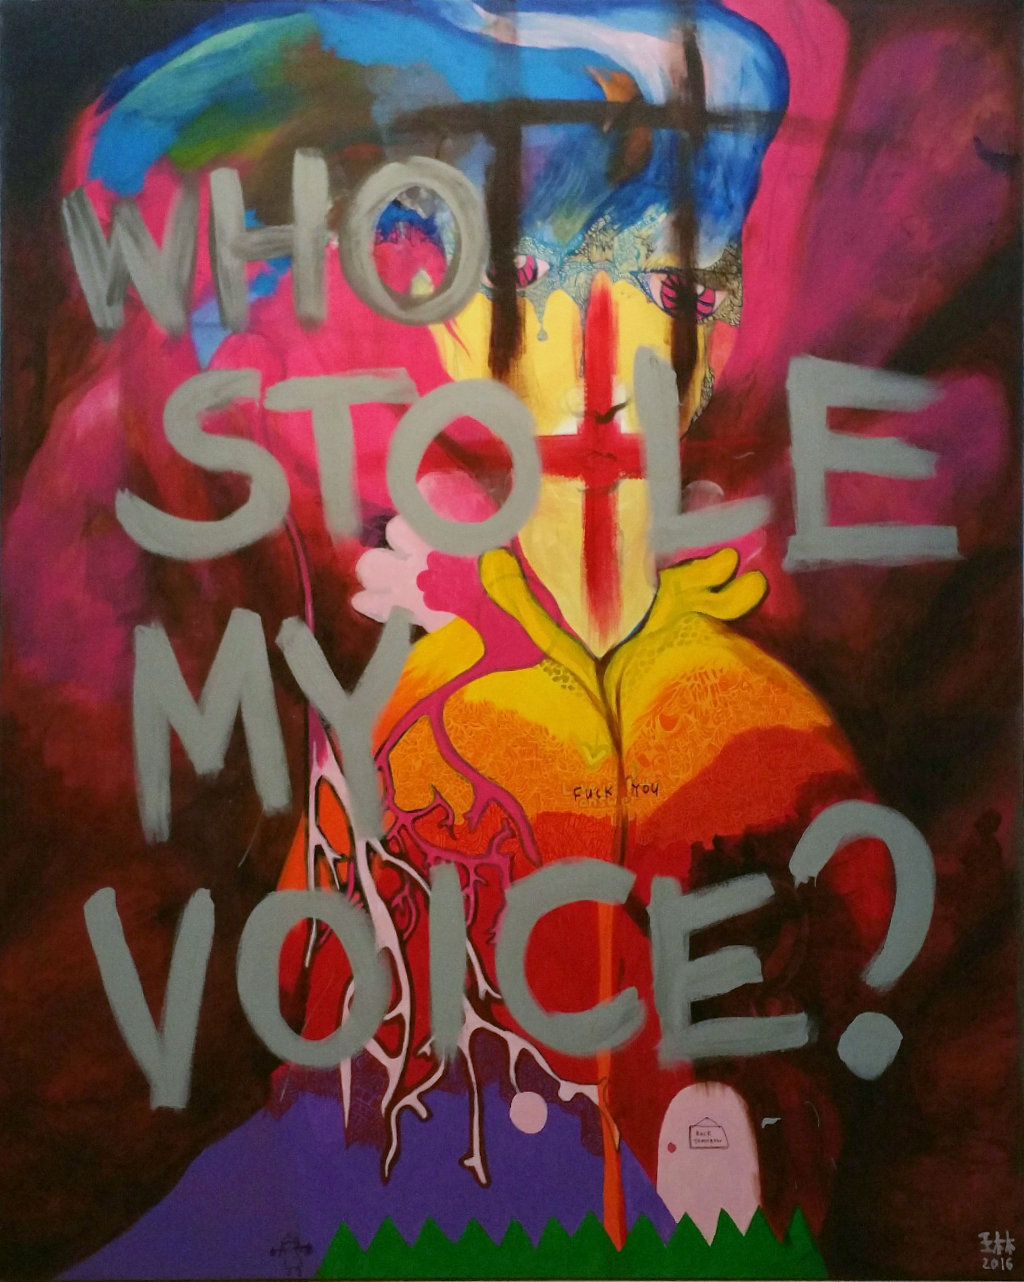 Who Stole My Voice? (2016)